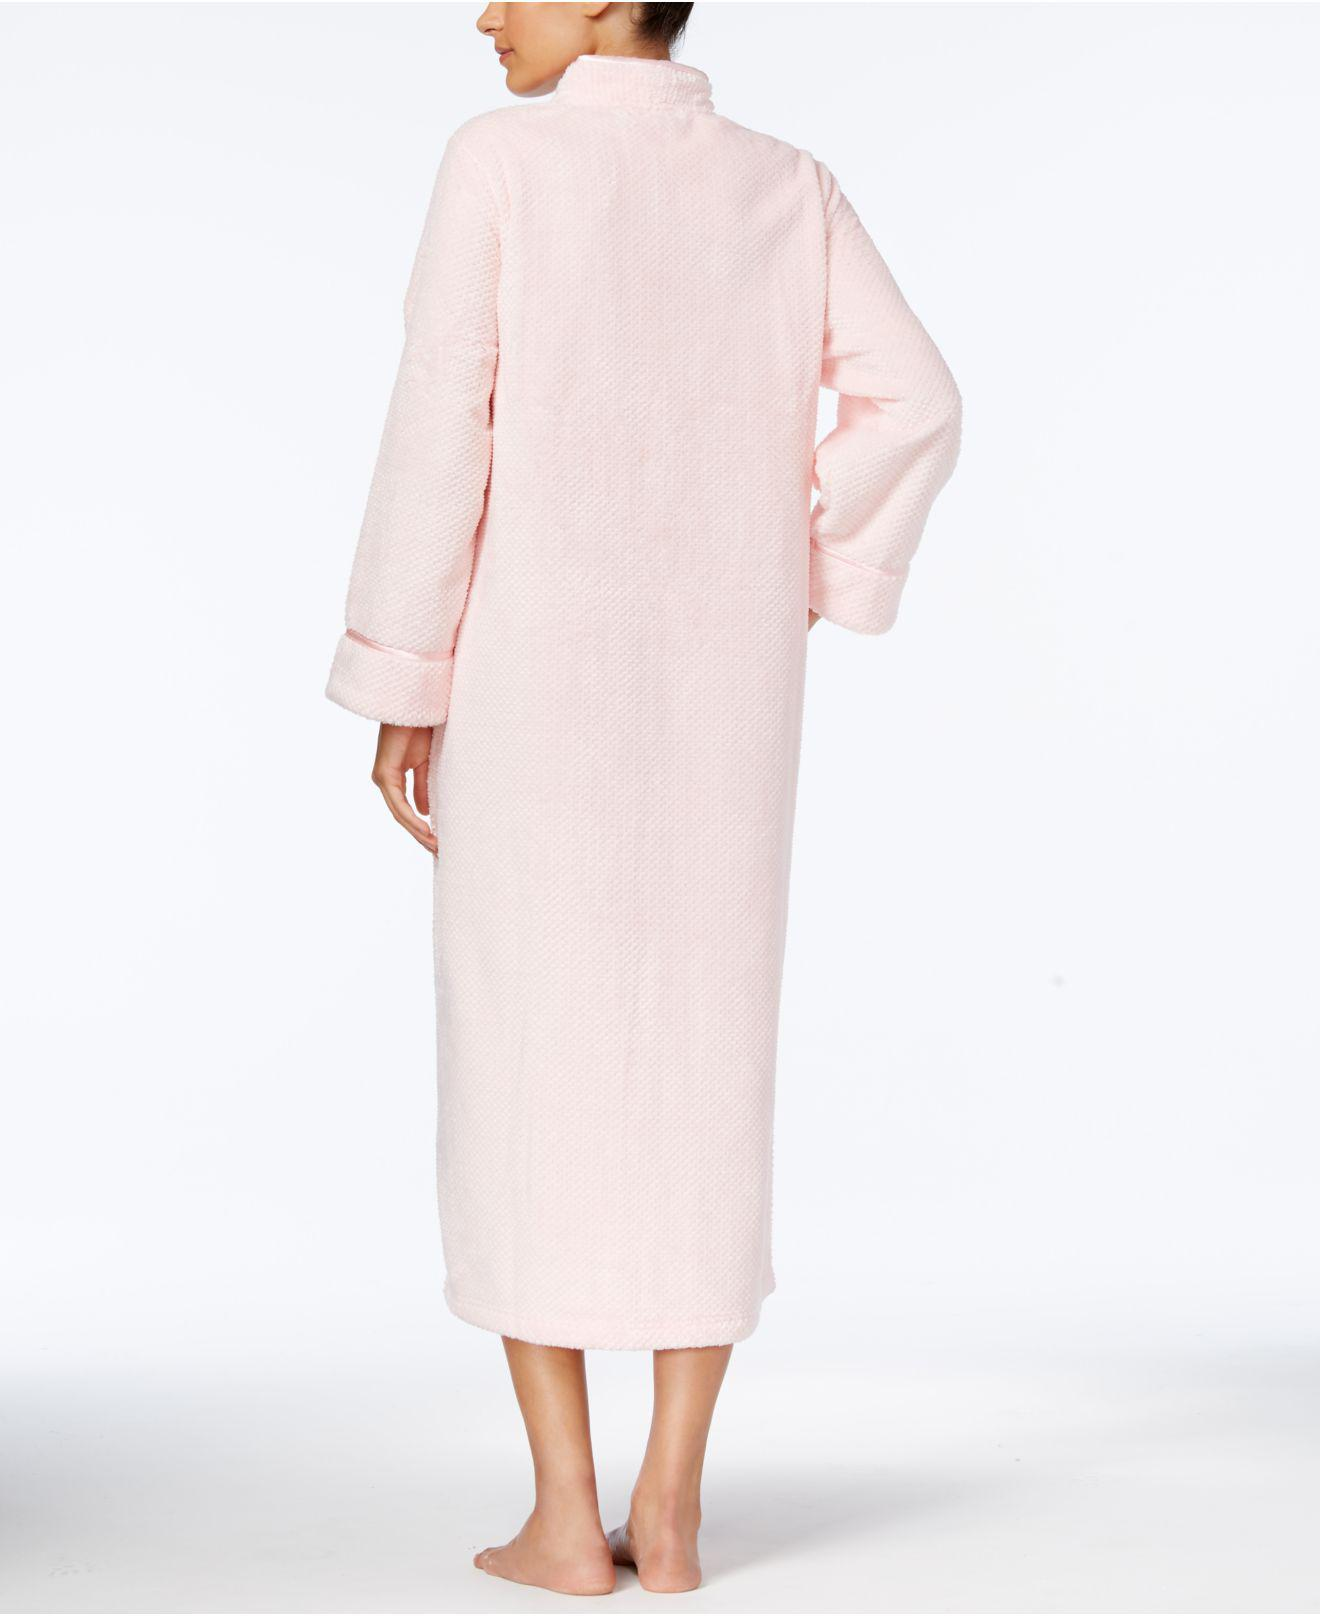 Lyst - Charter Club Long Dimple-textured Zip-front Robe in Pink 61de6322c